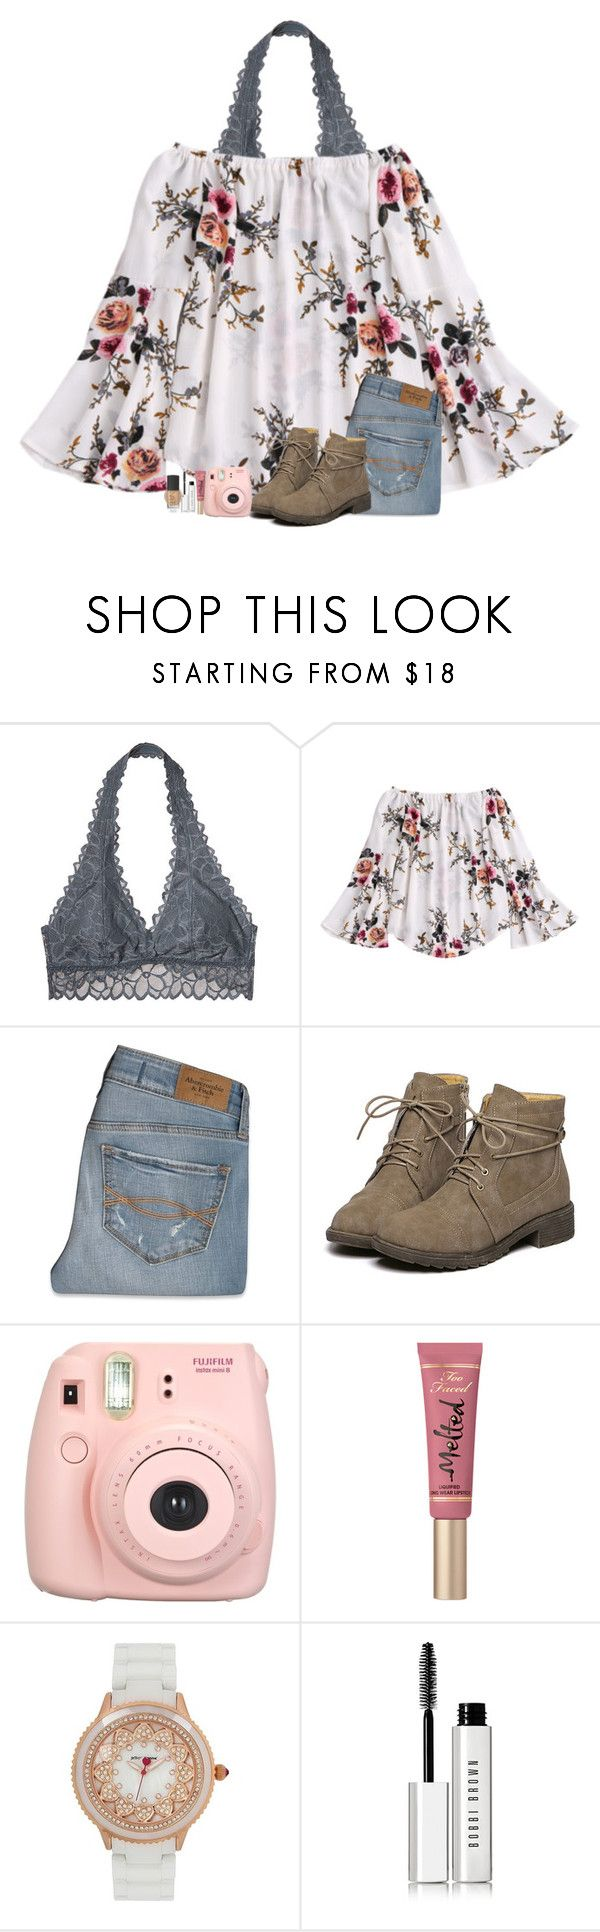 """HACKED! @amaya_leigh"" by alexislynea-804 on Polyvore featuring Victoria's Secret, Abercrombie & Fitch, Fujifilm, Too Faced Cosmetics, Betsey Johnson, Bobbi Brown Cosmetics and NARS Cosmetics"